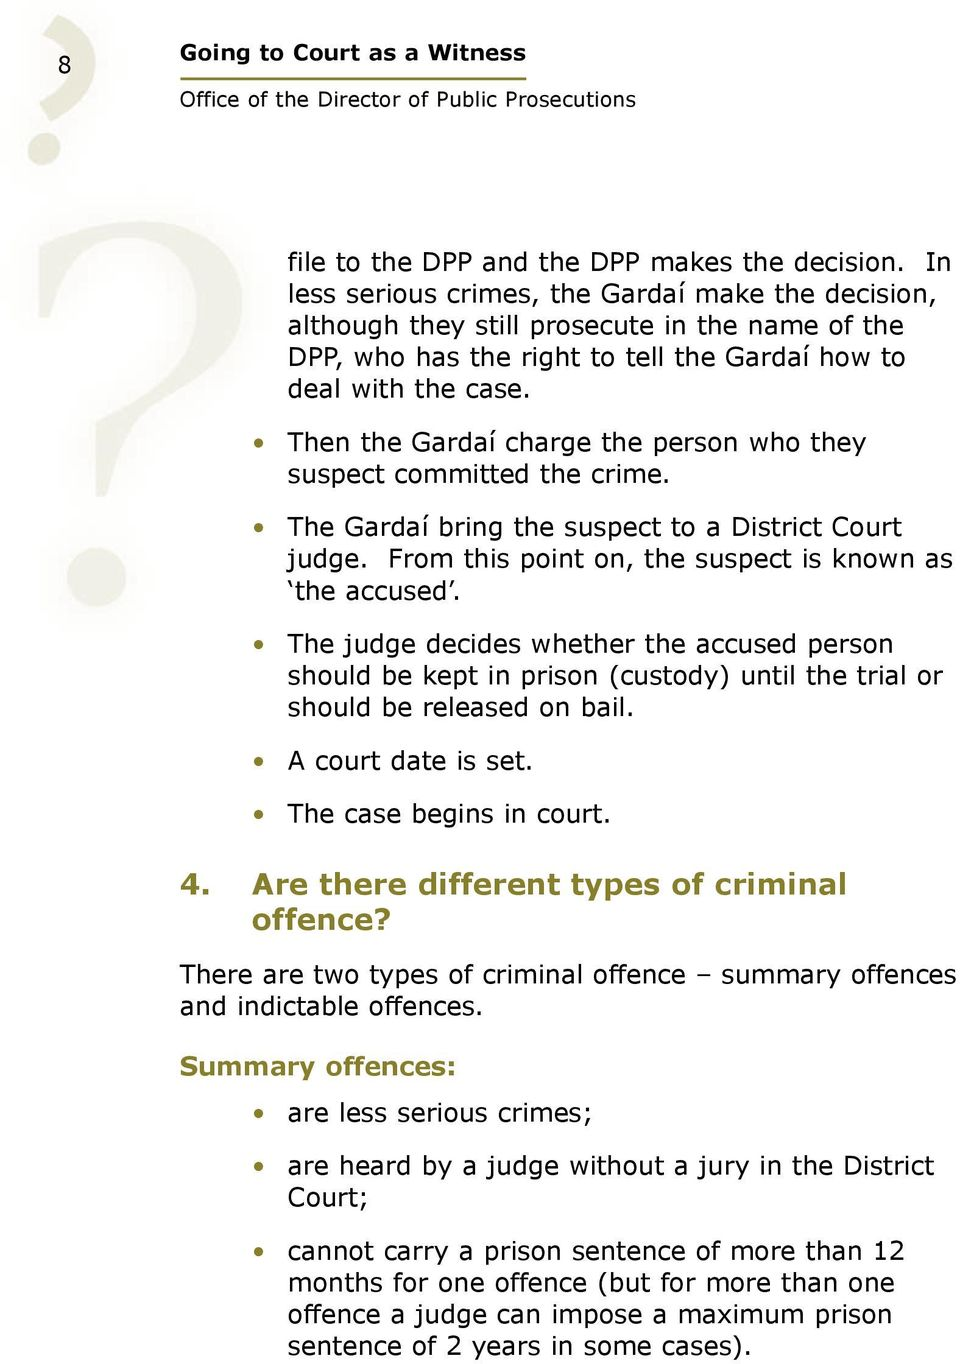 Then the Gardaí charge the person who they suspect committed the crime. The Gardaí bring the suspect to a District Court judge. From this point on, the suspect is known as the accused.